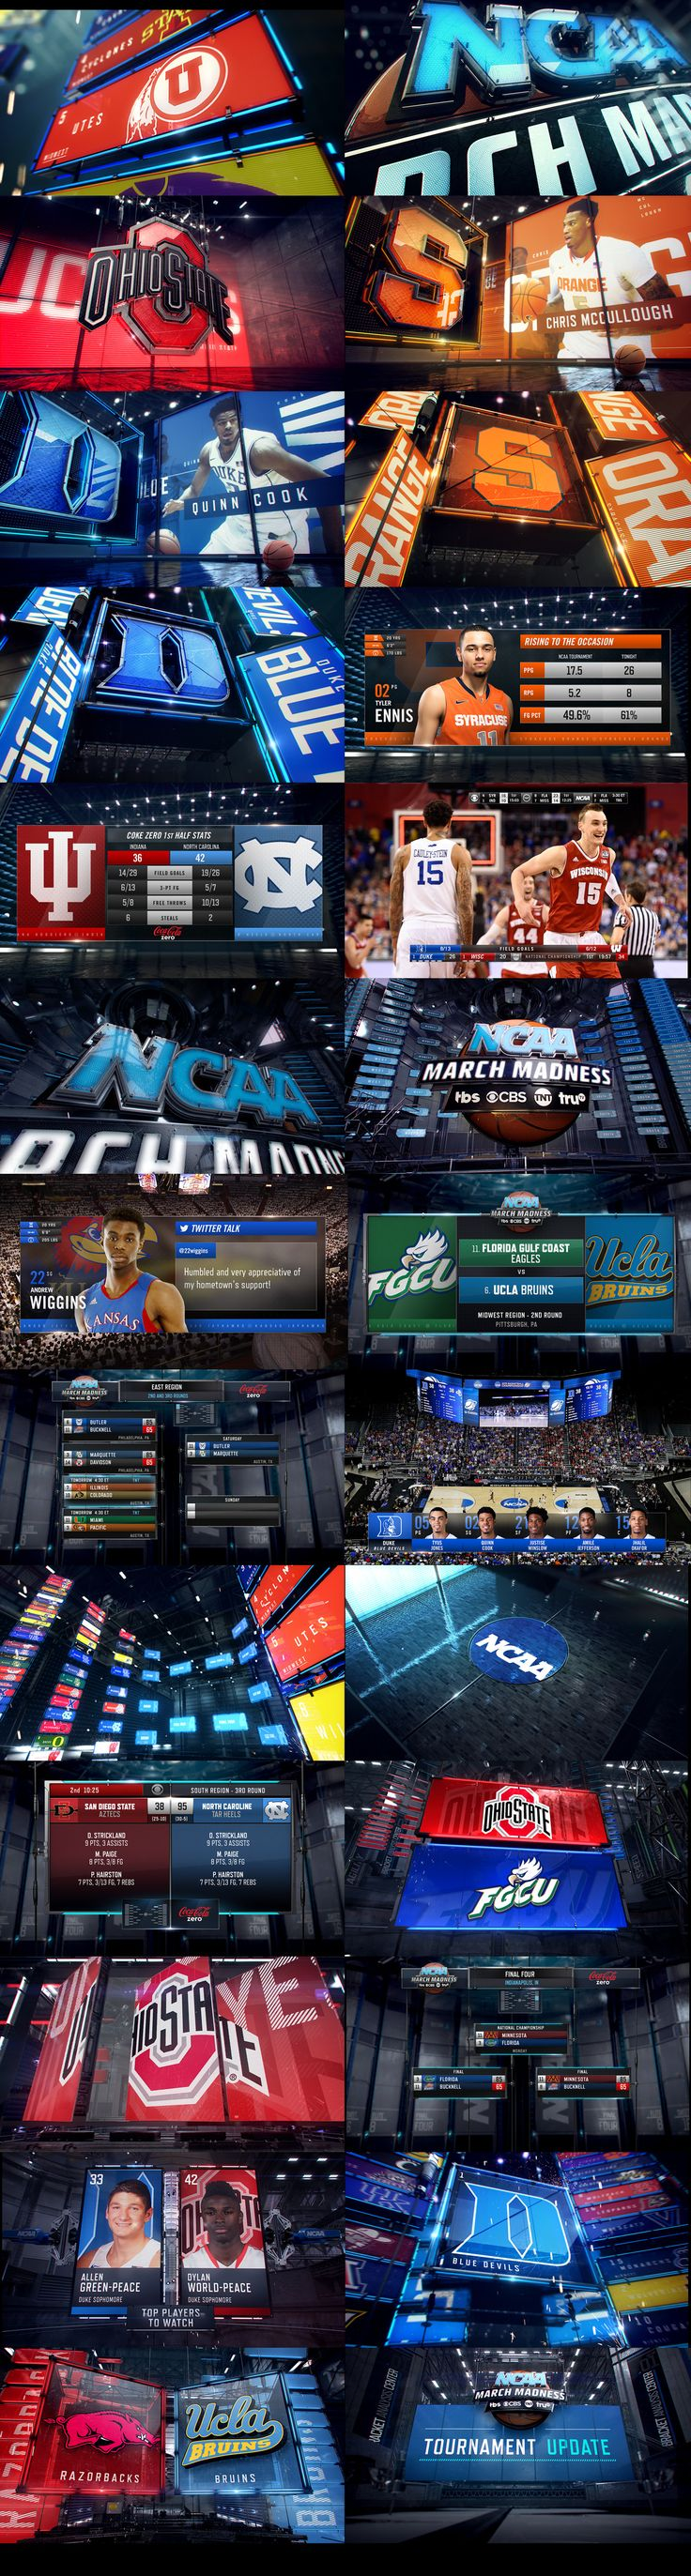 concept and design for the march madness ncaa 2015.done trough King and Country